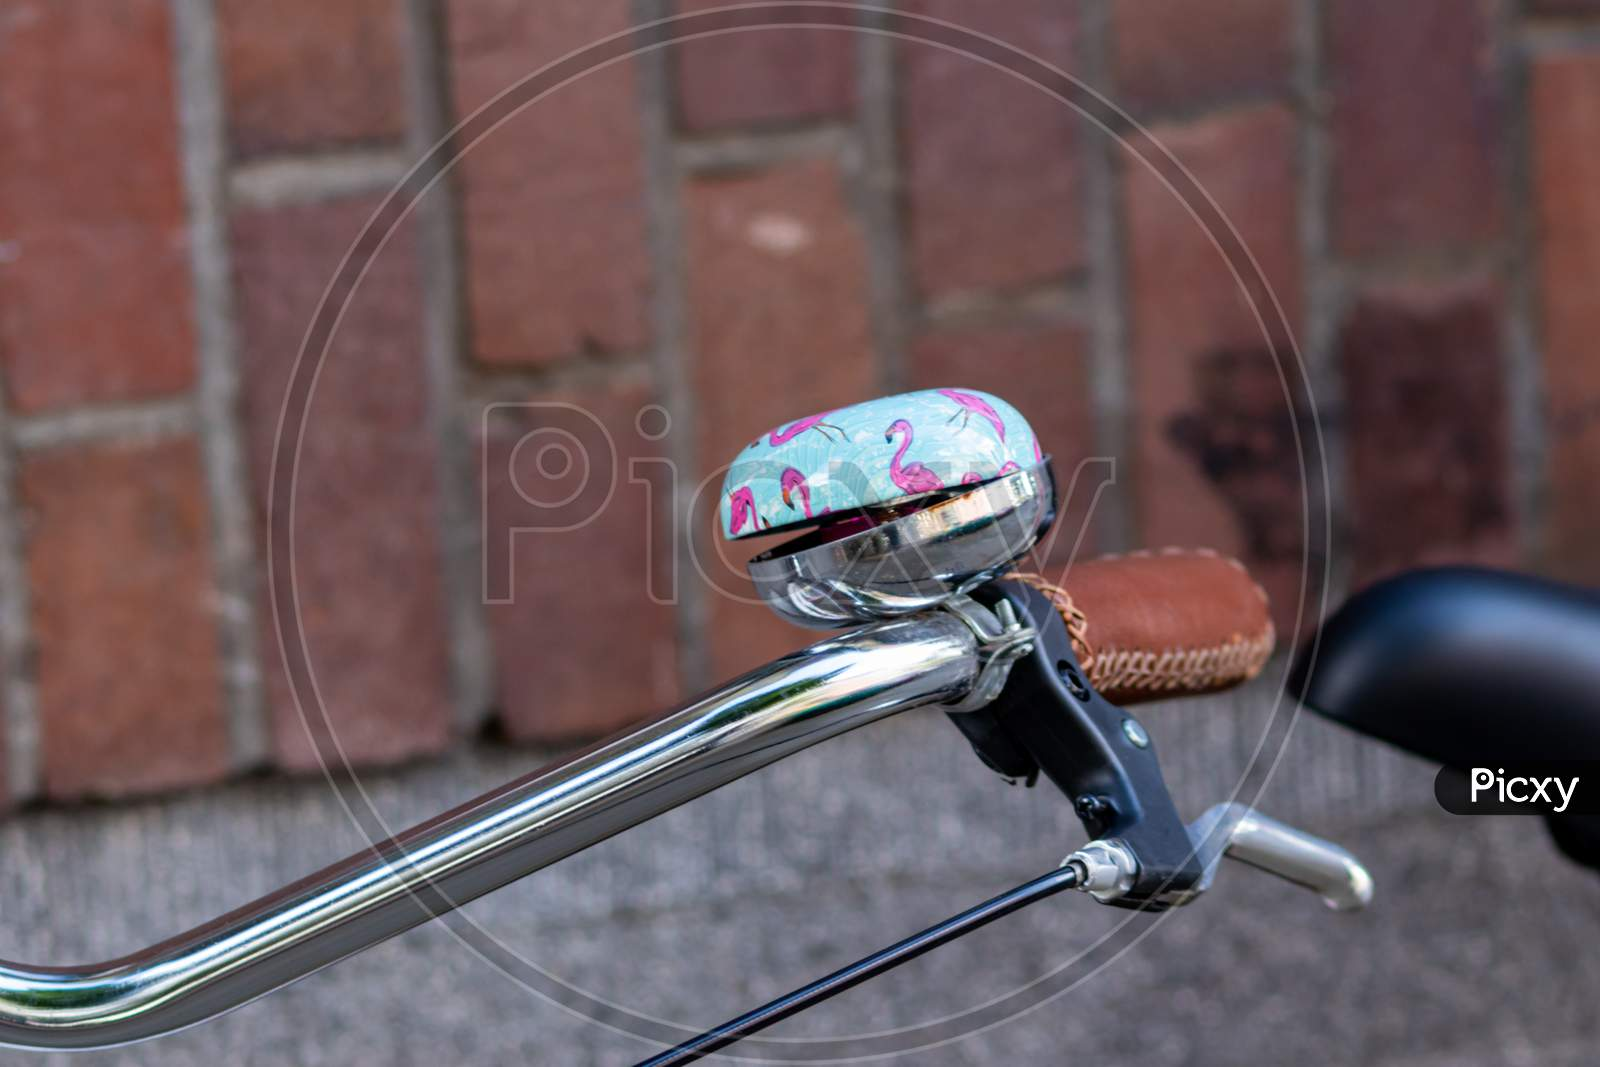 Beautiful bike bell with a shiny finish at a silver metal bicycle handlebar as sustainable mobility and a lot of copy space and a blurred background shows safety aspects and emission free transportation